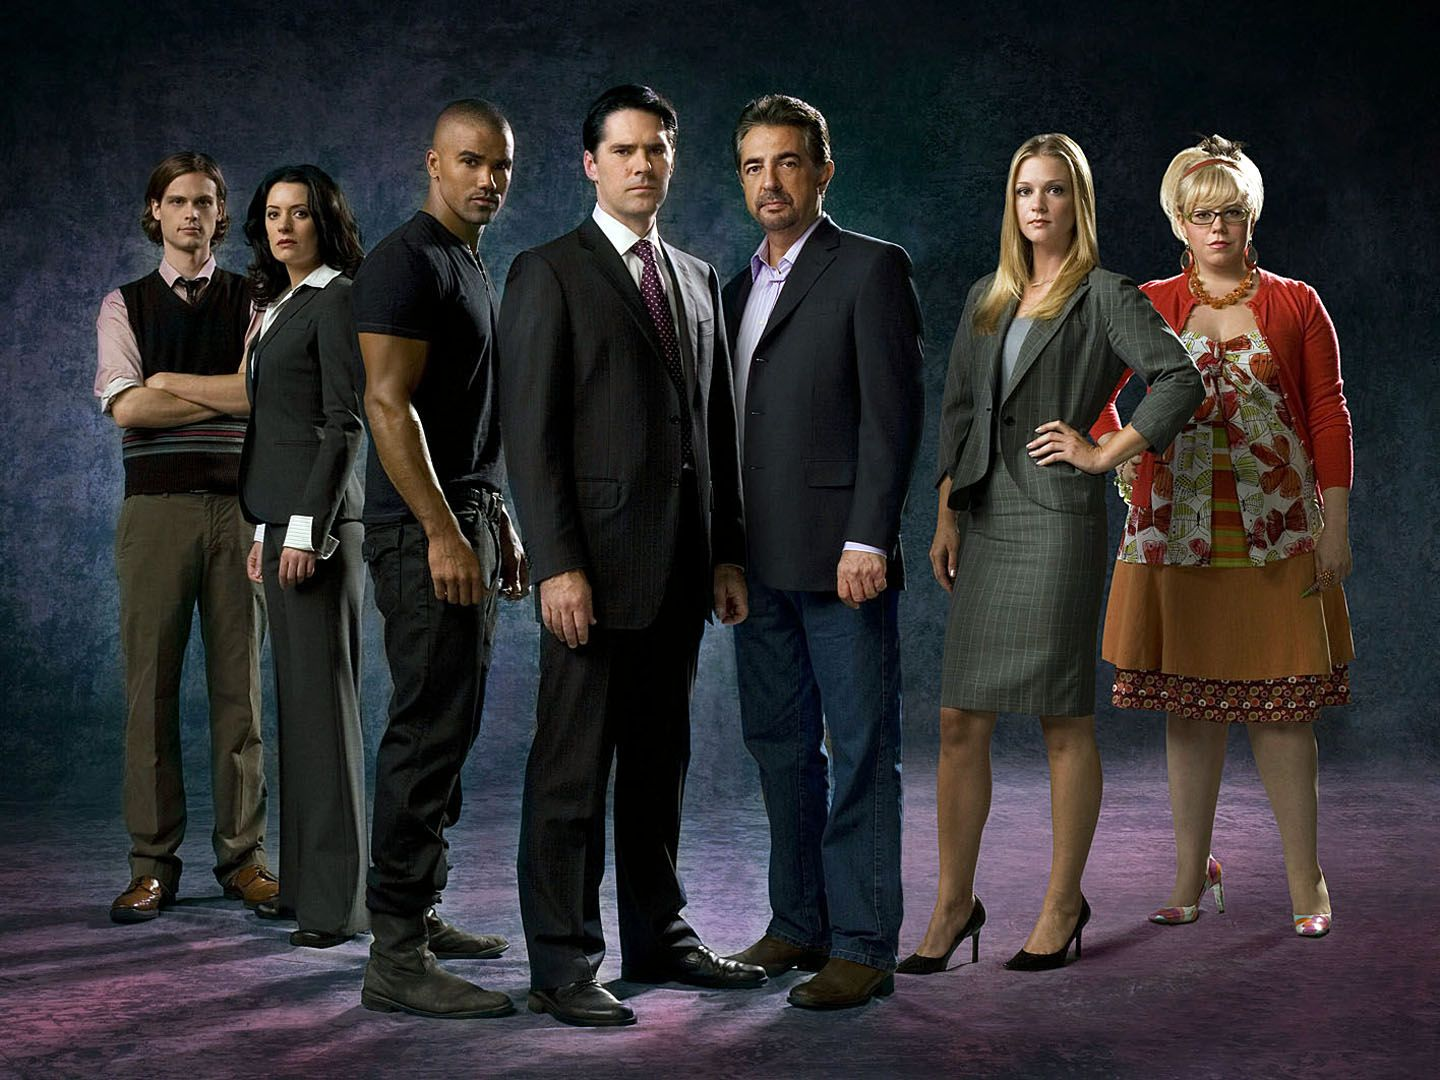 All the canceled TV shows of 2020 11